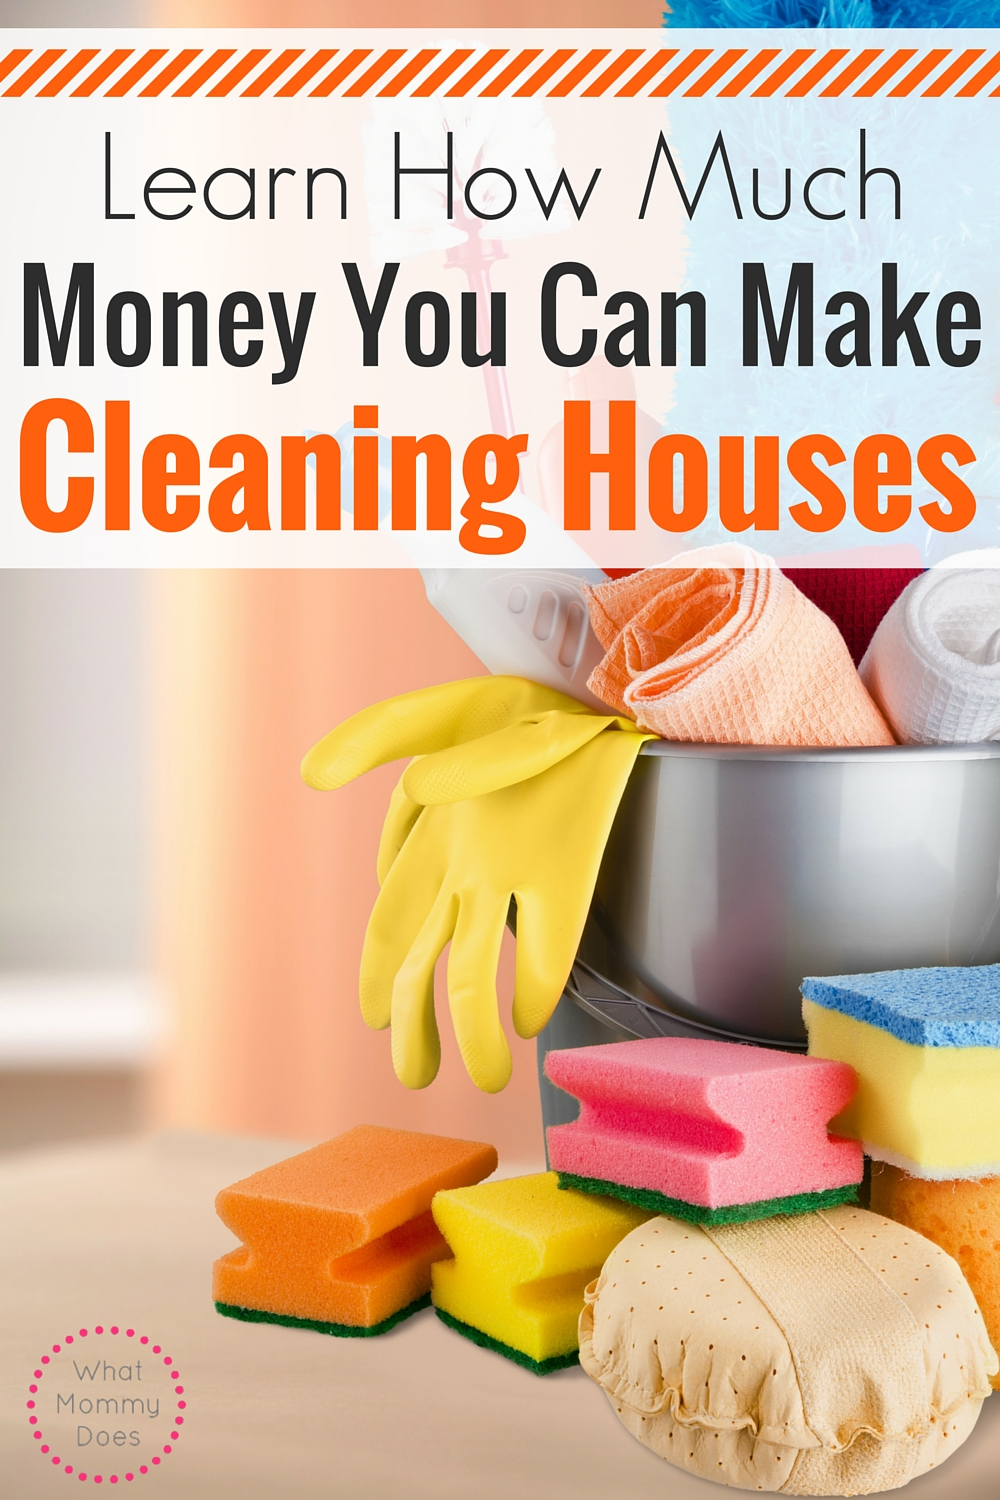 Make Money Cleaning Houses - A great guide to starting a lucrative side hustle by cleaning houses!